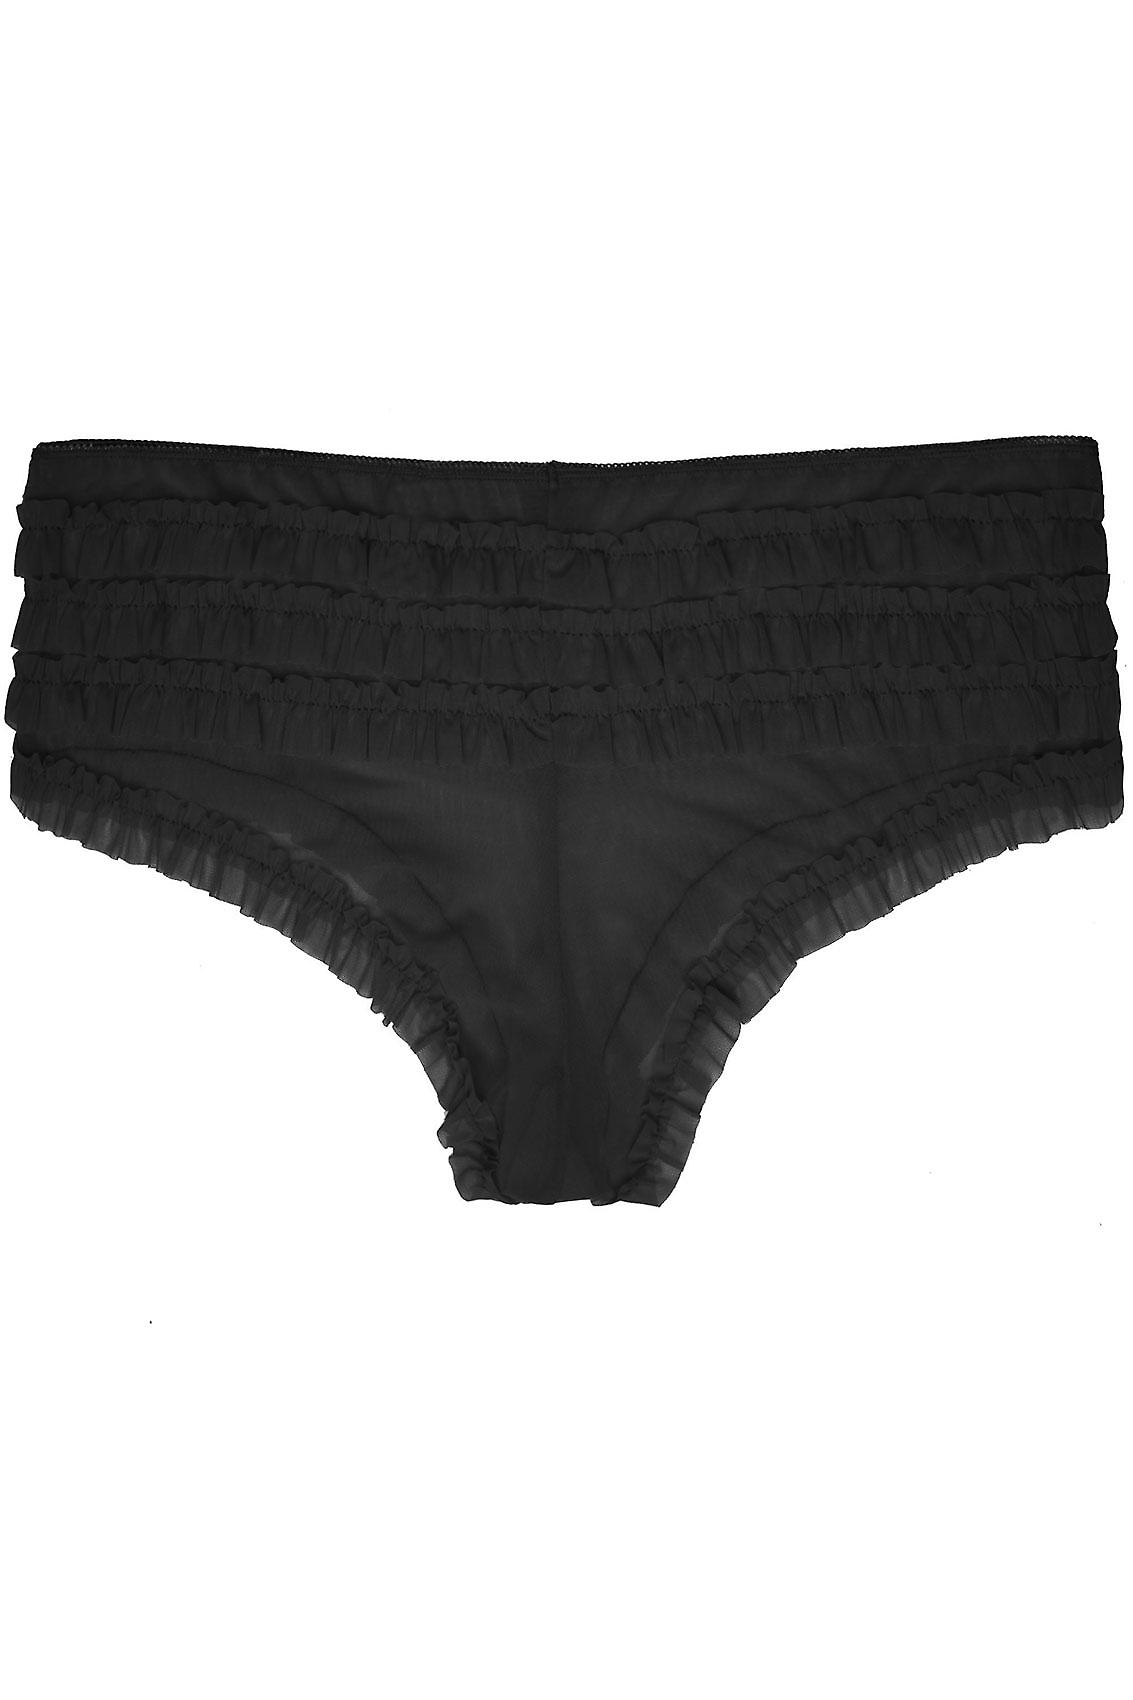 Black Frilly Mesh Brief